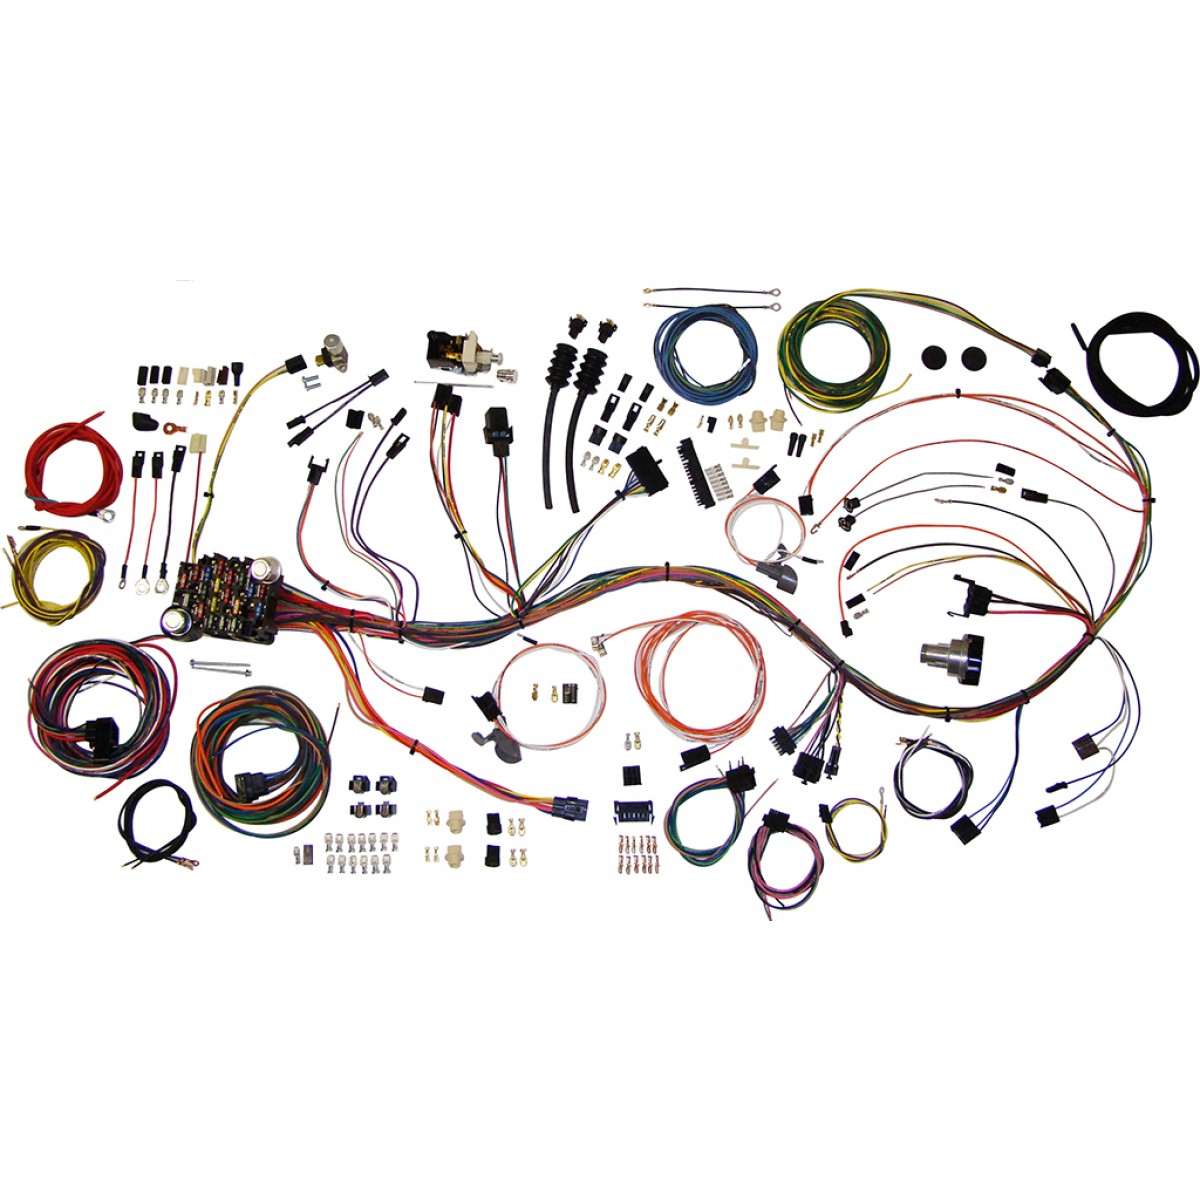 1972 American Auto Wire Code 510 Wiring Harness Factory Fitting Dodge Demon Complete Kit 1969 Chevy Truck Part 510089